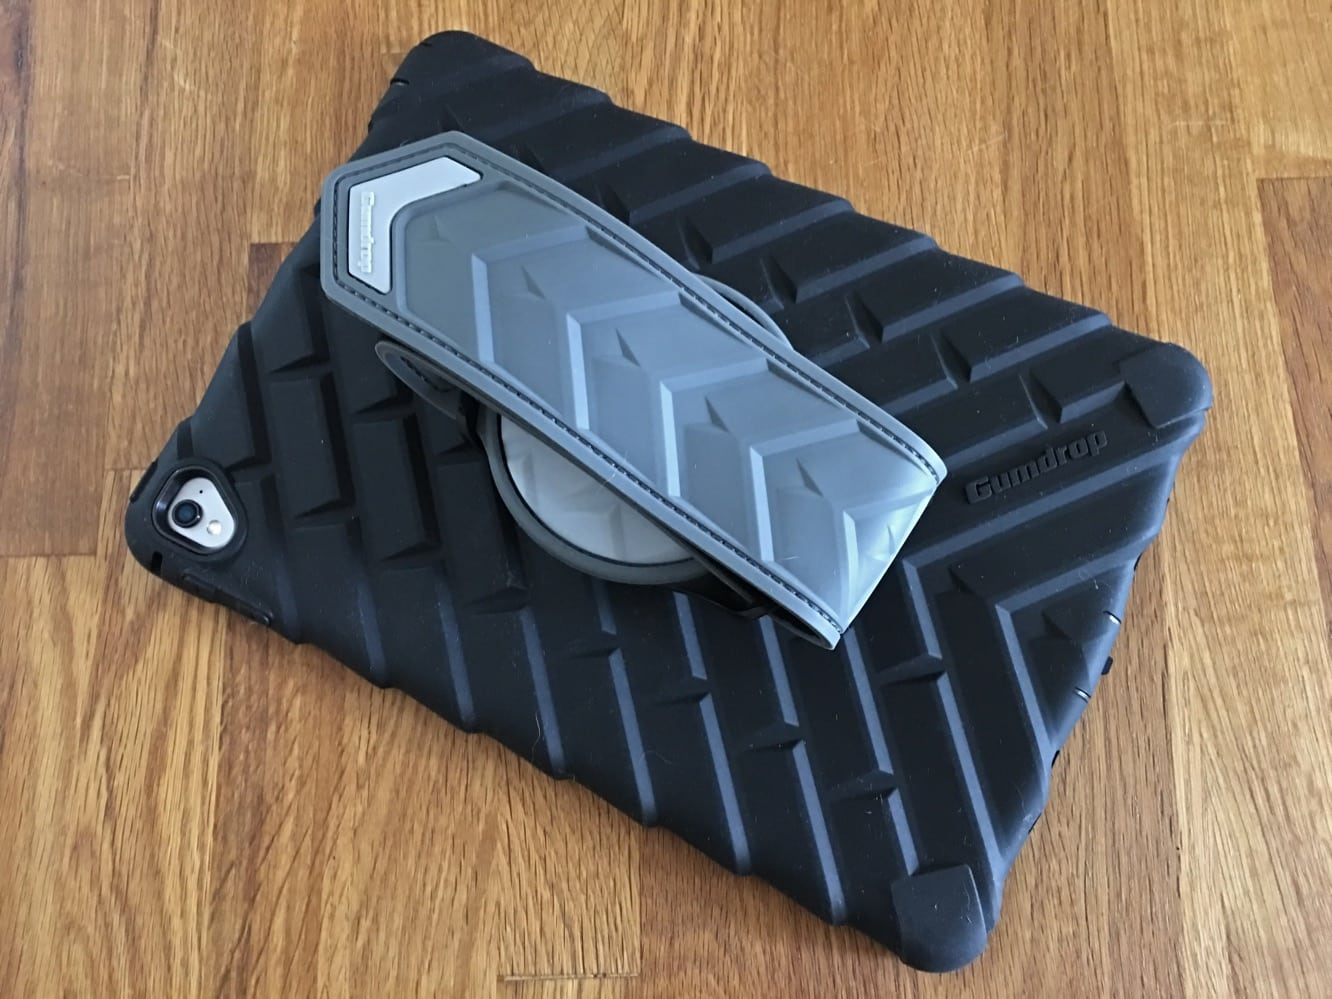 """Review: Gumdrop Cases DropTech Case + Hand Strap for 9.7"""" iPad Pro"""